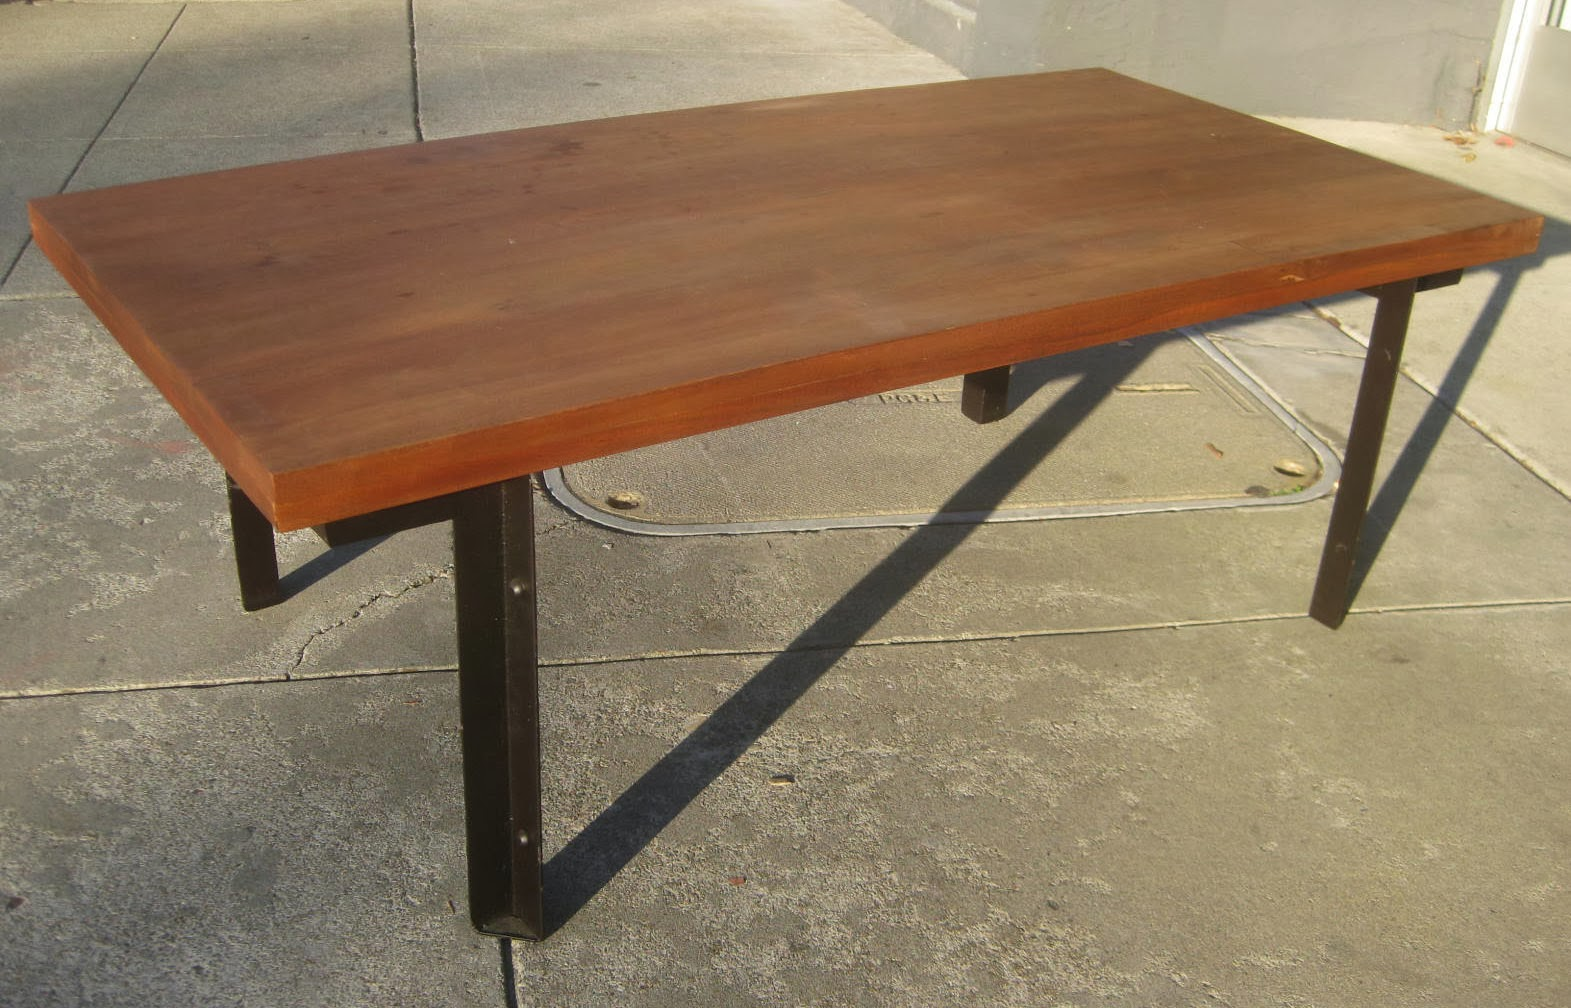 UHURU FURNITURE COLLECTIBLES SOLD Industrial Coffee Table 35